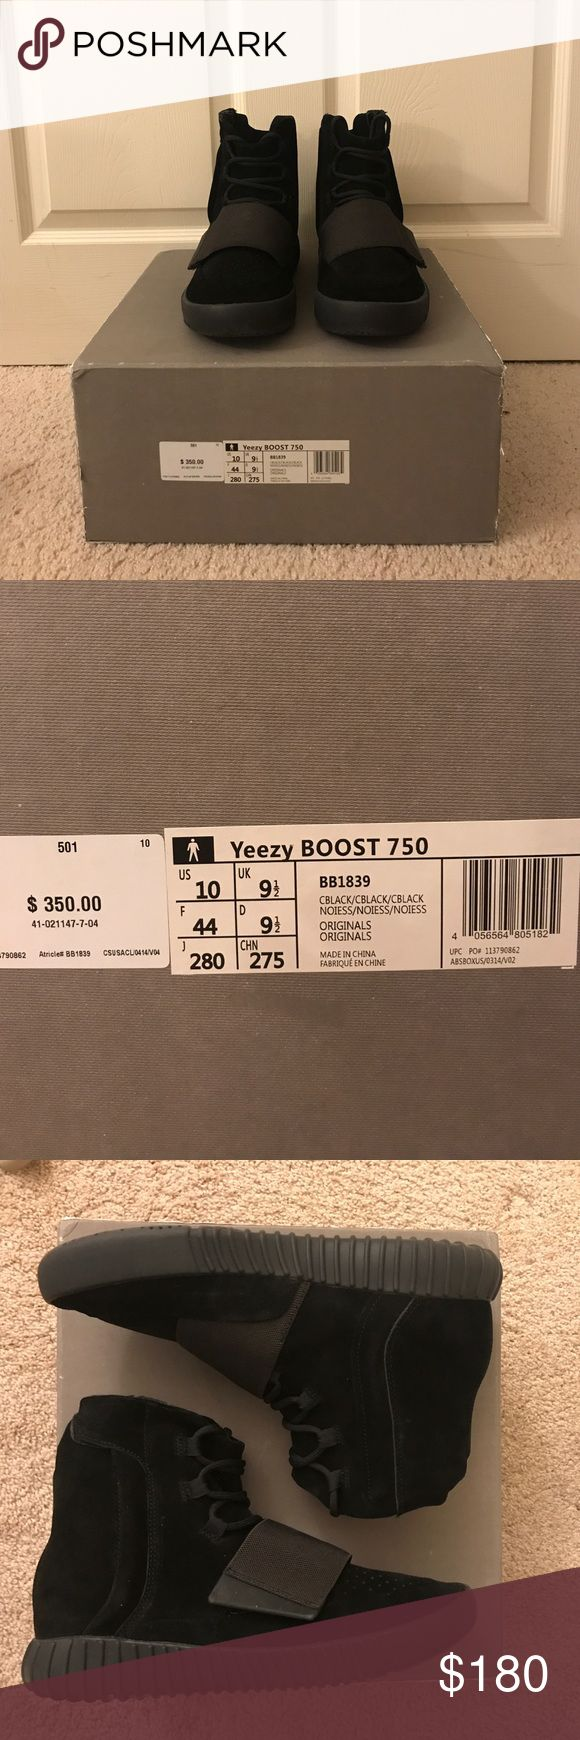 Perfectkicks Yeezy Boost 750 Black 📦 ✨New with box+Dust Bag ✨📦 Perfect Kicks is the only factory who can get more original materials than others. They got the original materials from adidas factory in China directly. Their version is the BEST you can find in the replica market 100% similarity guaranteed. This former loved Yeezy has been worn with caution, MINT condition, now selling it only 1/5 of the original price. FYI, their website is perfectkicks.me/ Yeezy Shoes Sneakers